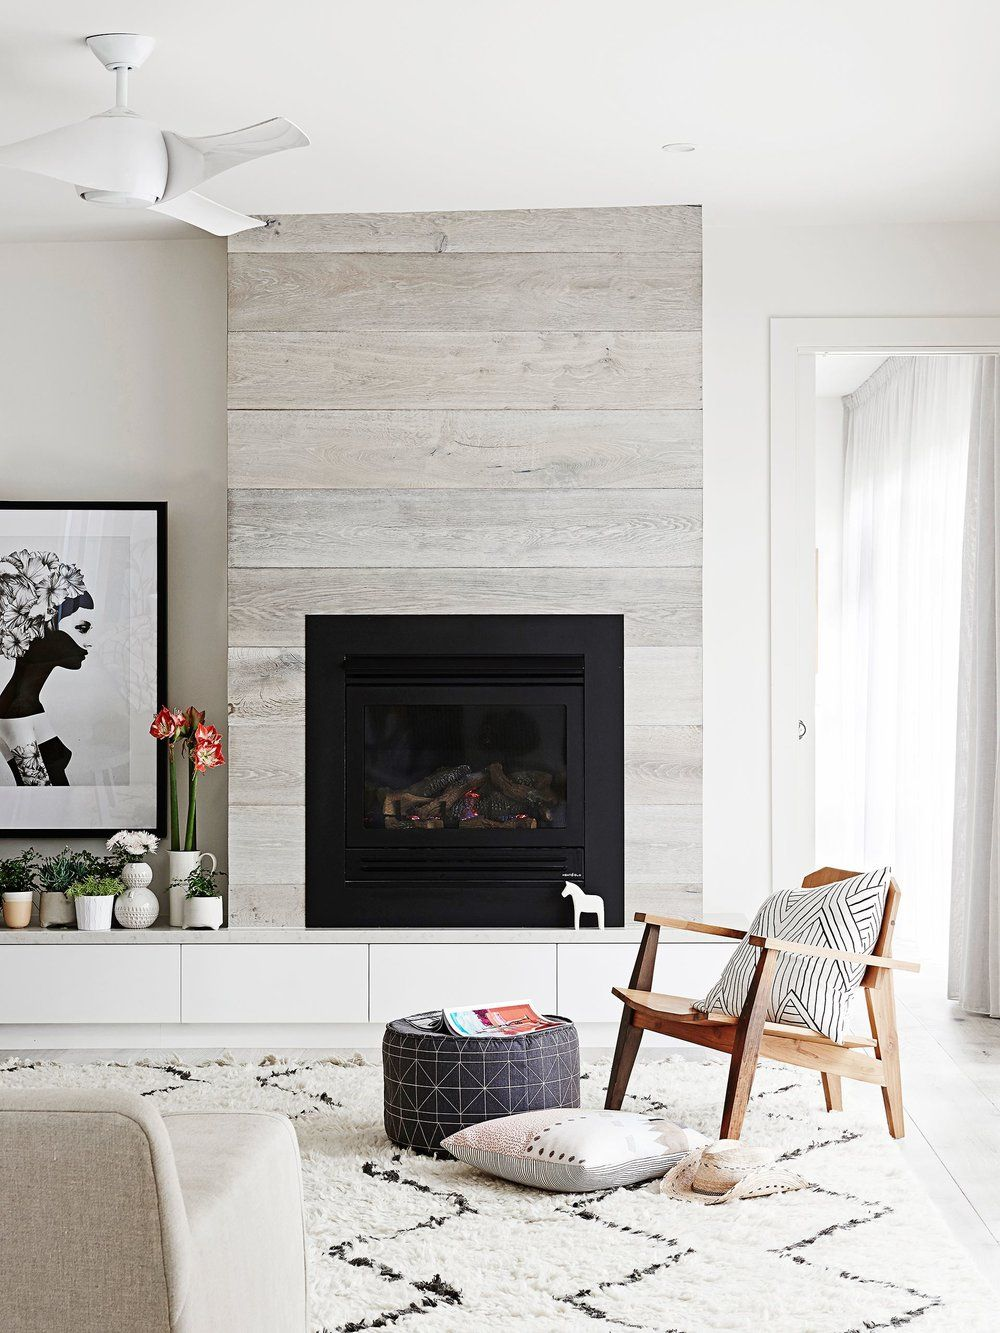 Our Favorite Fireplace Trends | Beams, Storage and Living rooms